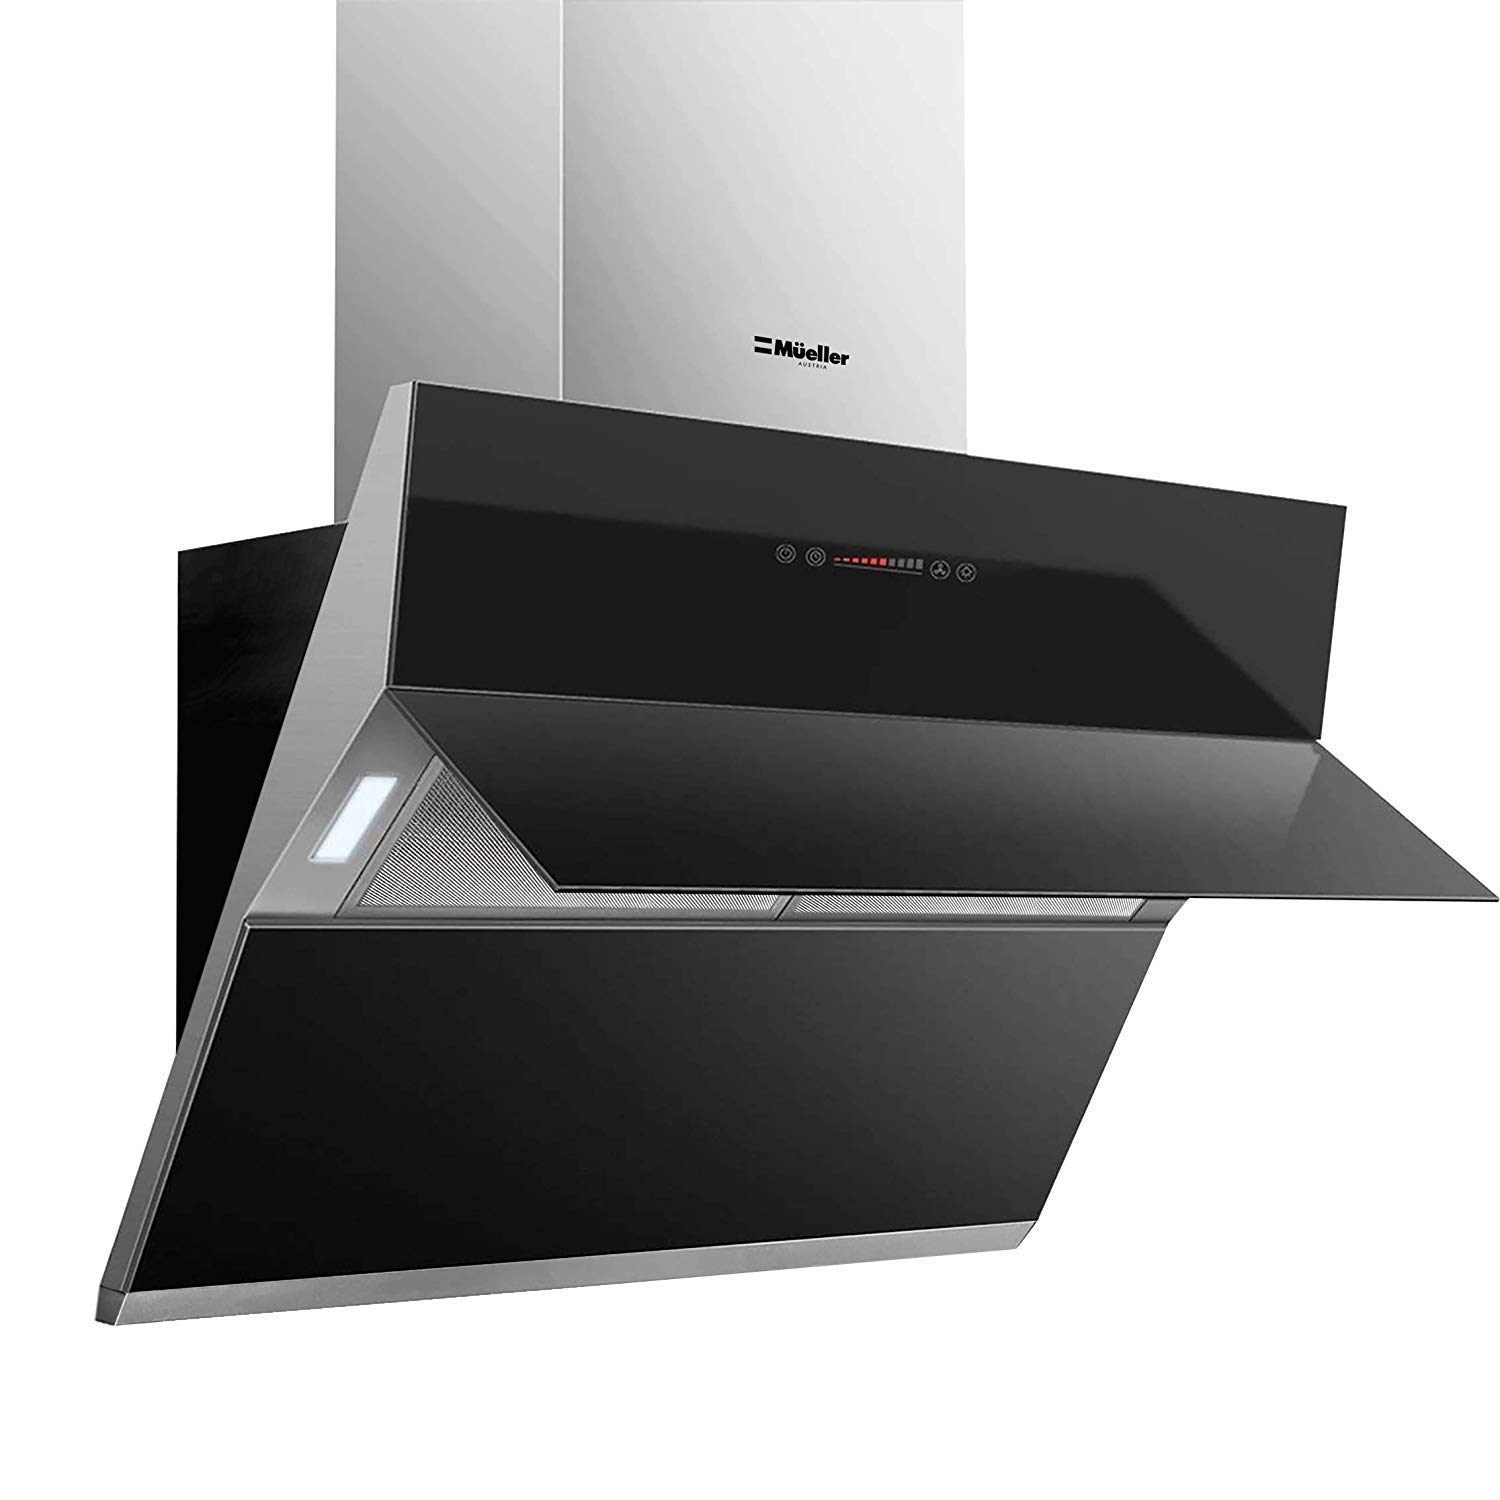 "Mueller Deluxe 36"" High Air Flow Modern Eurocentric Style Wall Mount Satin Finish & Black Tempered Glass LED Touch Control Oven Range Hood Vent Cooking Fan"